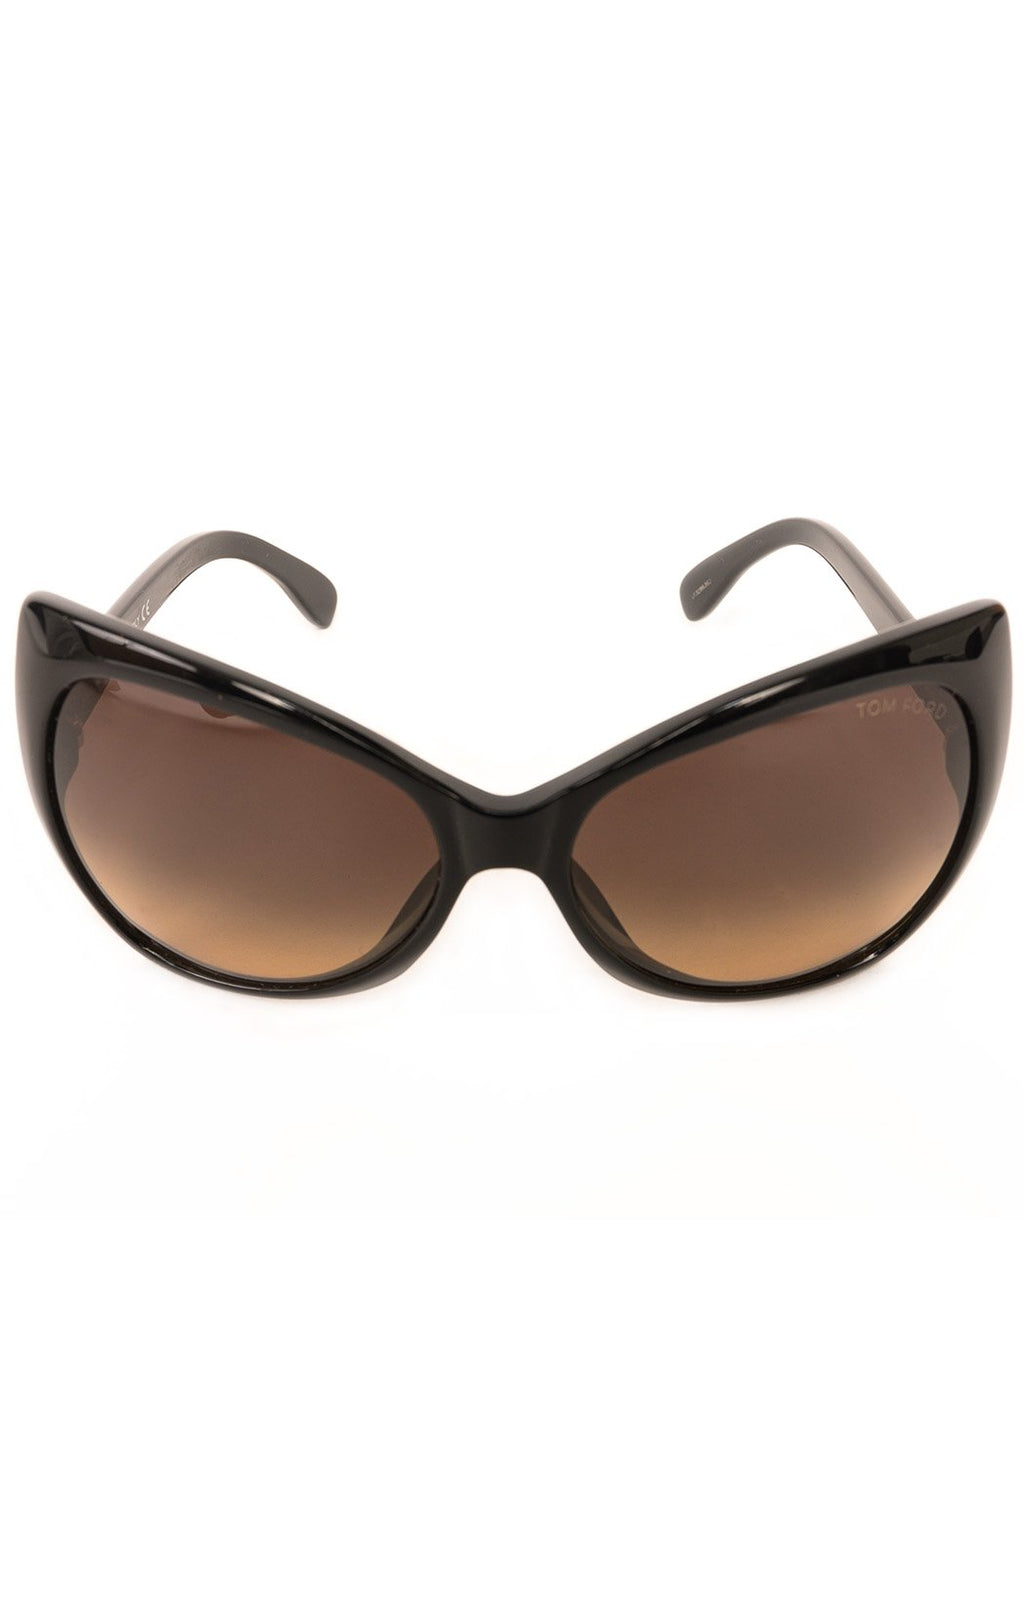 "Front view of TOM FORD Sunglasses  Size: 6"" W x 2.5"" H"